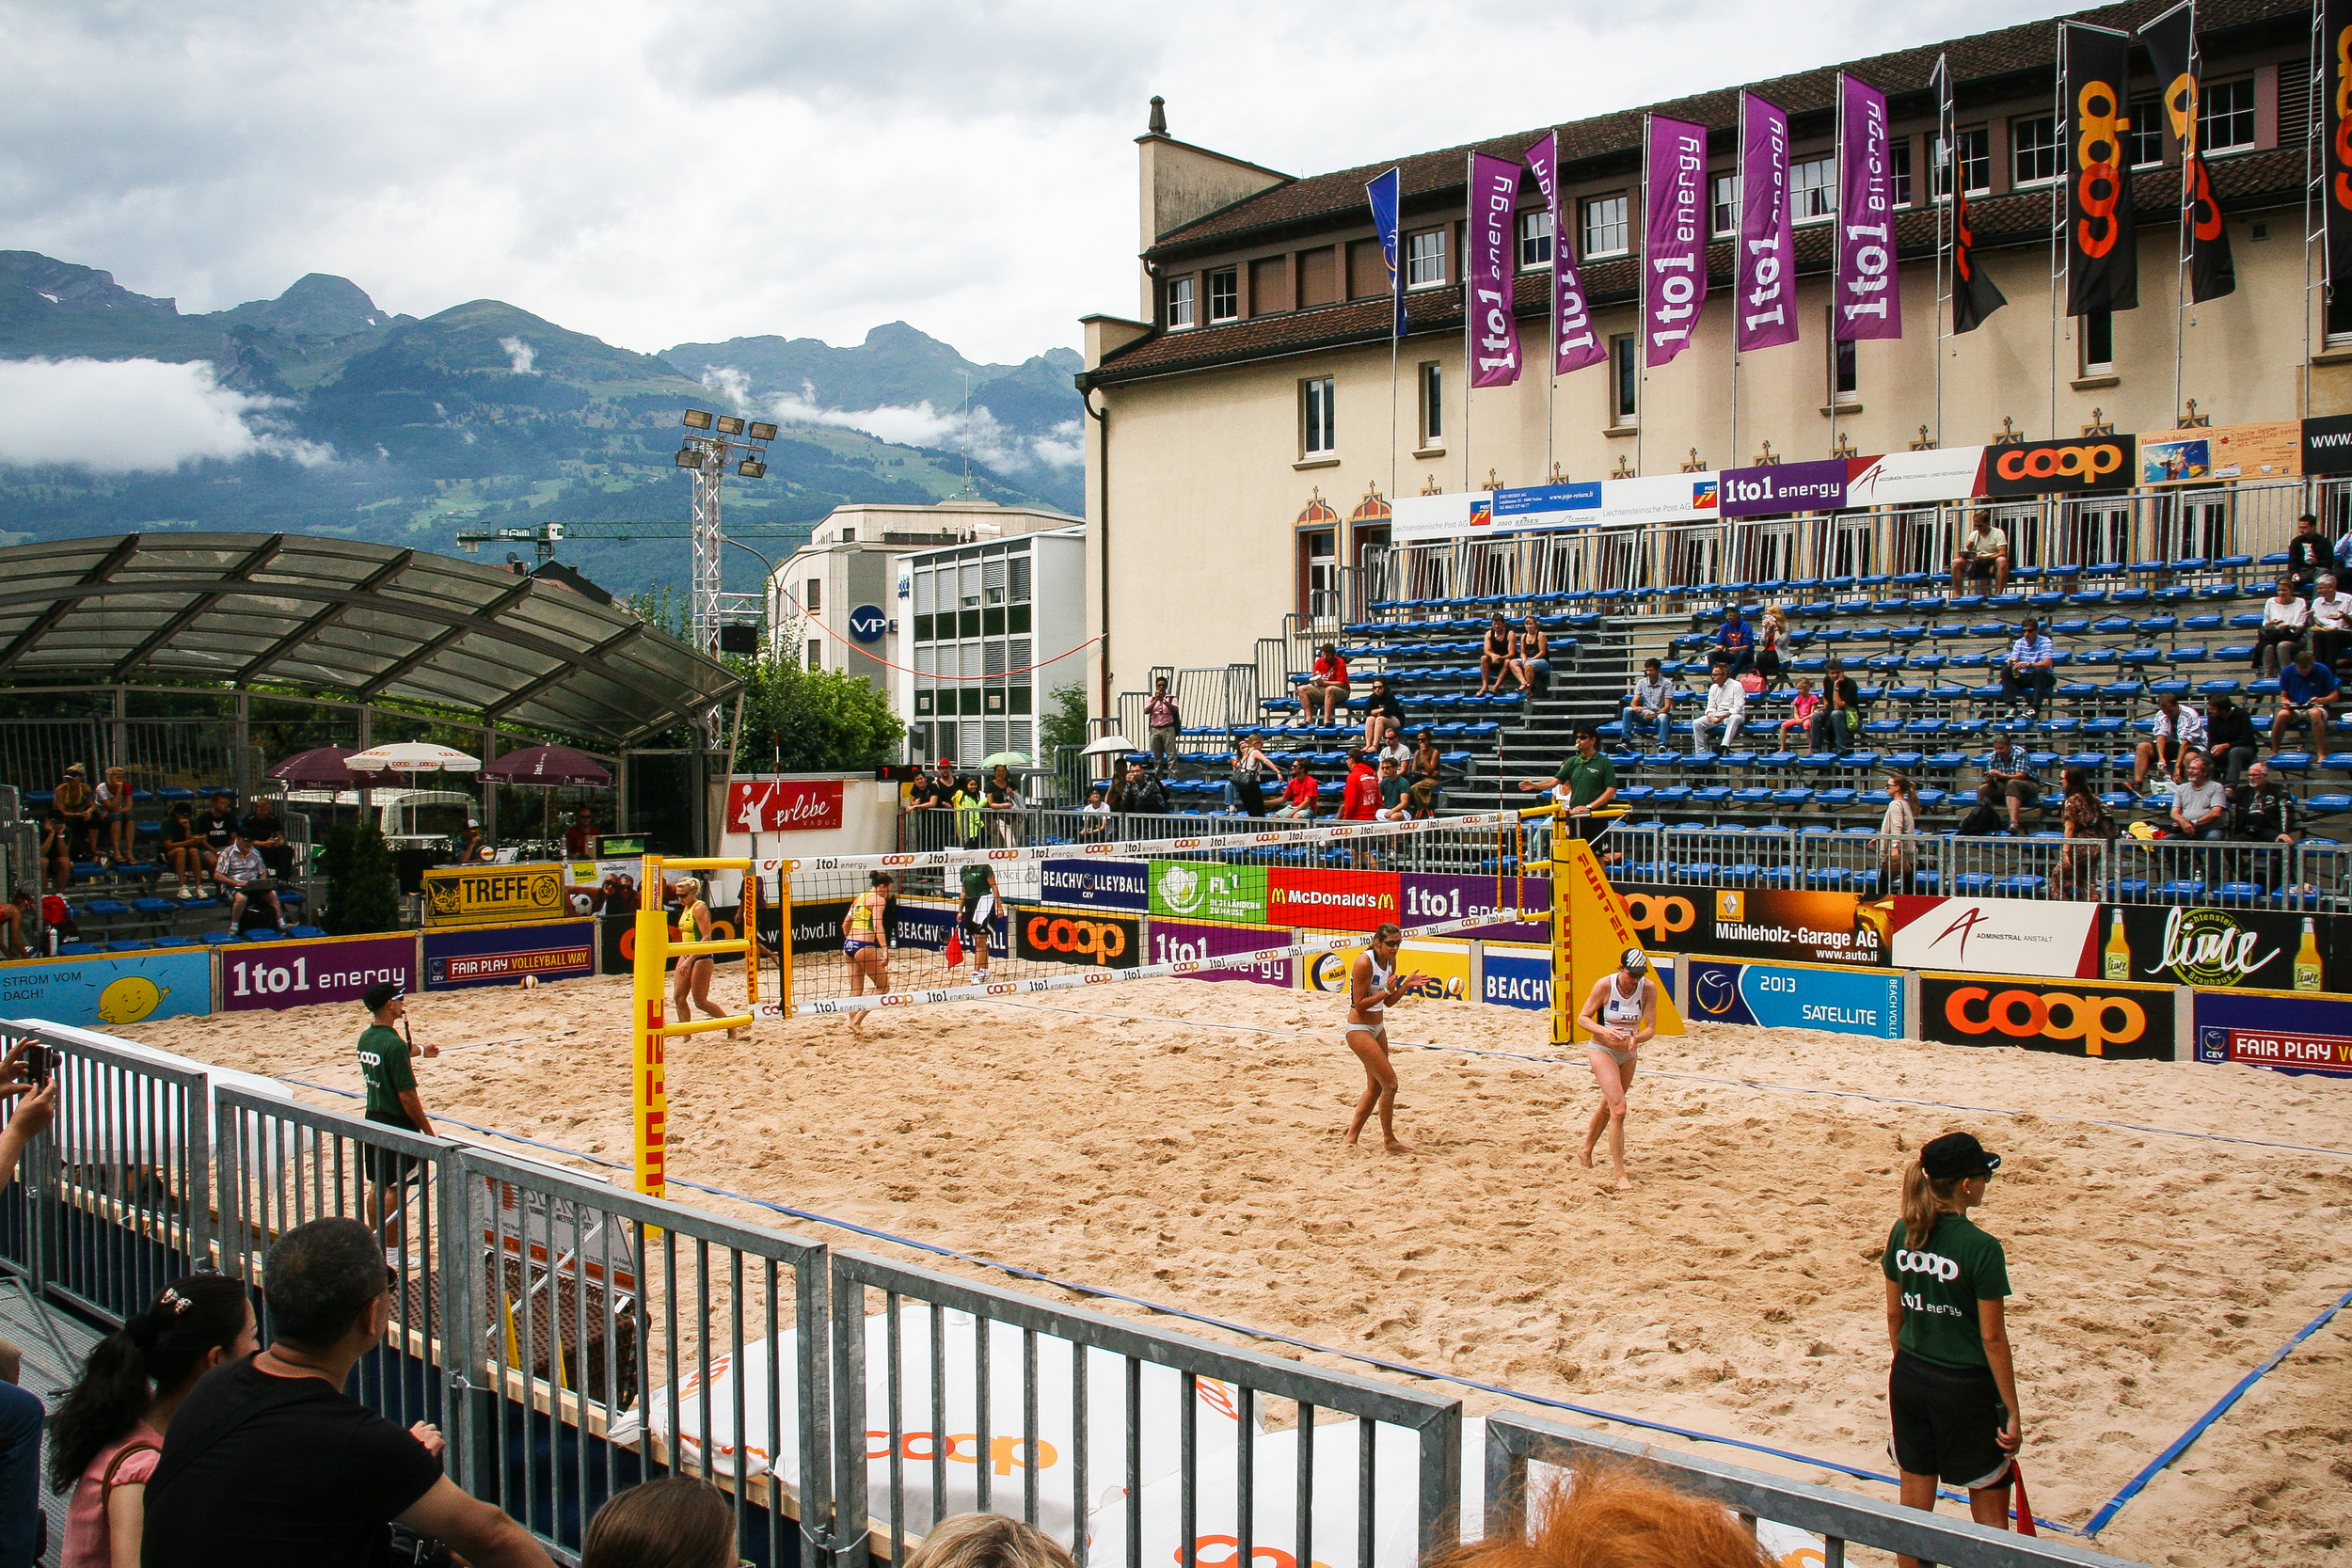 Vaduz.  The square in front of the City Hall can serve as a beach volleyball field like here for an international championship.